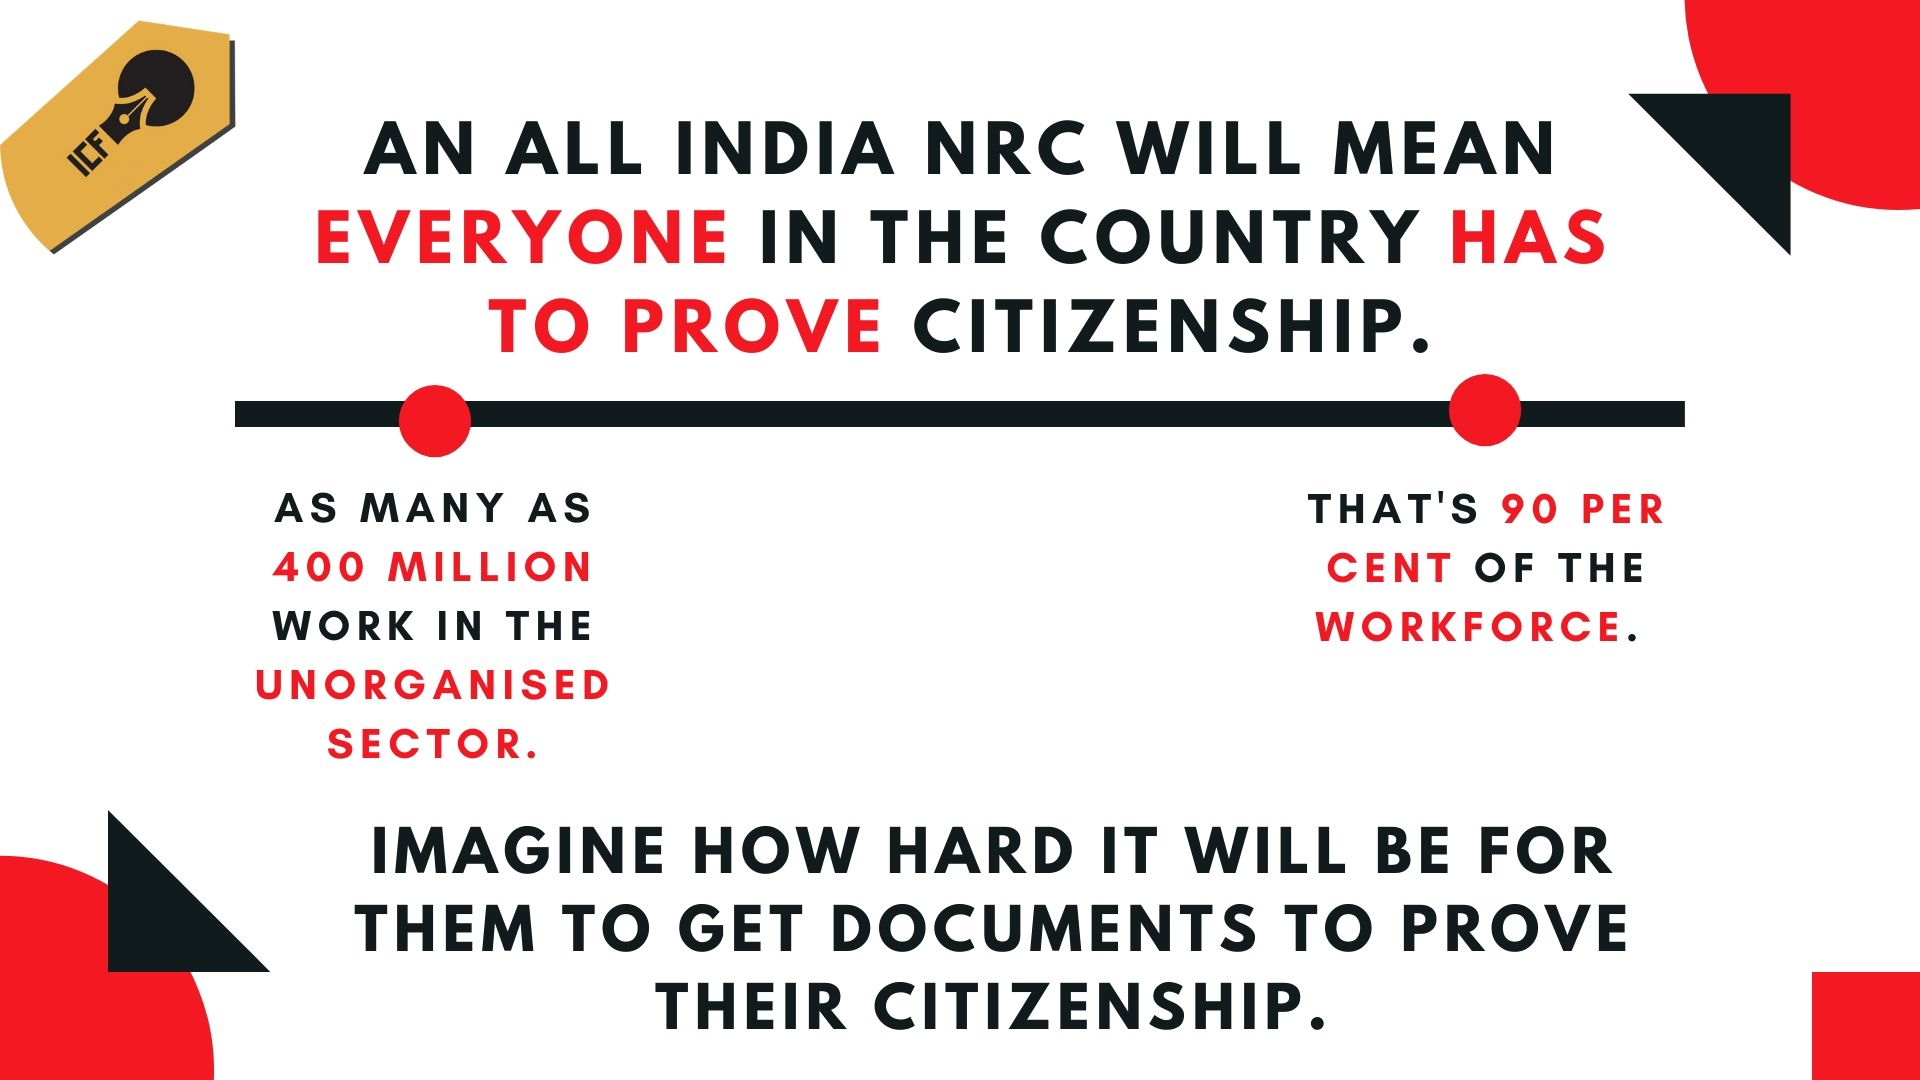 How will 400 million people from Unorganized Sector Prove Citizenship?